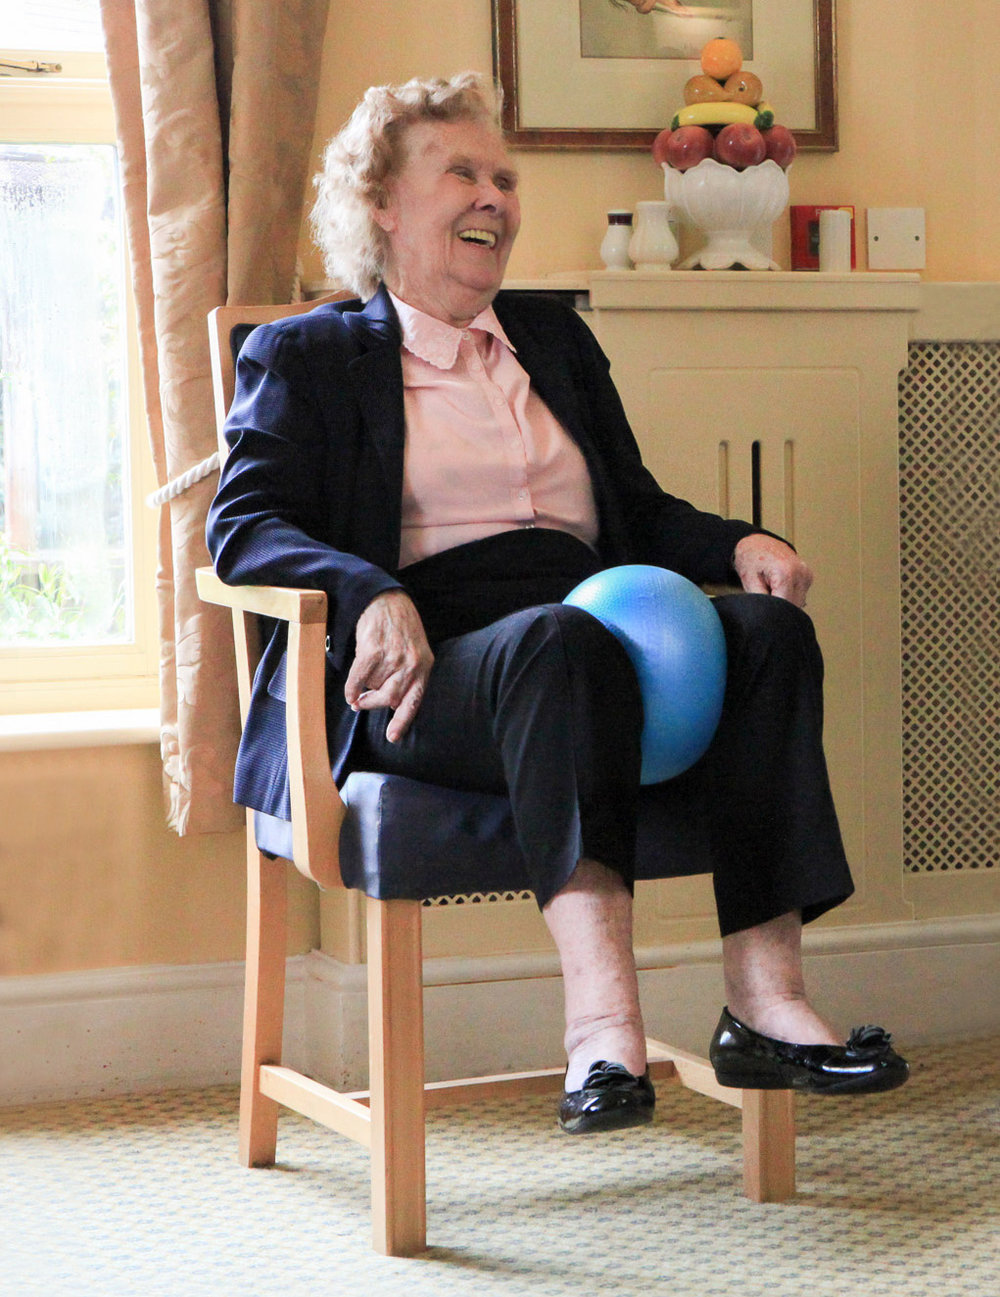 mobility-classes-for-care-homes-wiltshire-bath-somerset.jpg